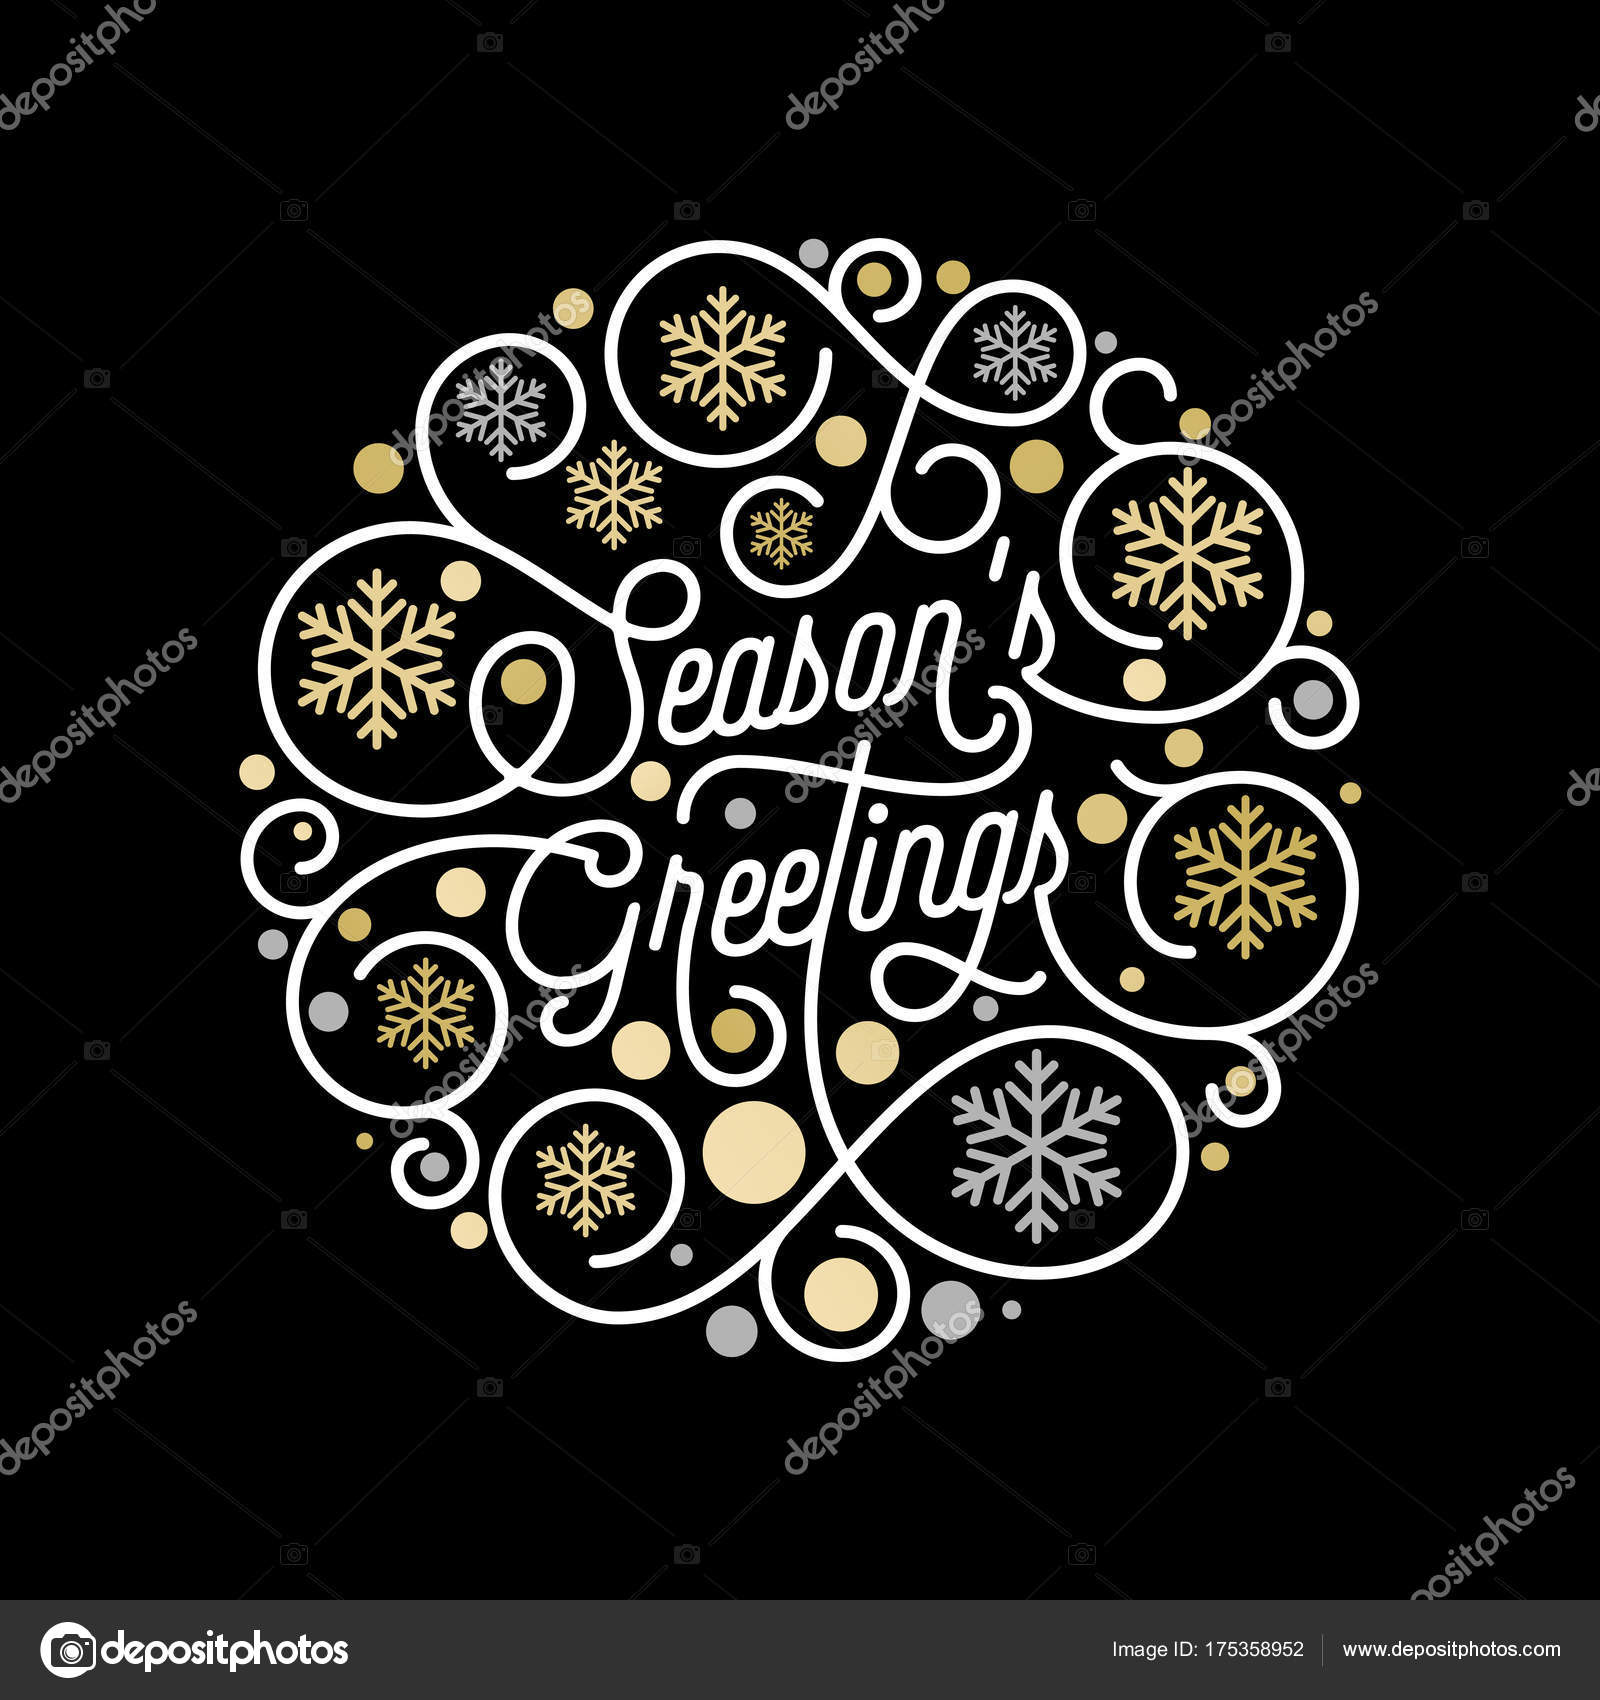 Season greetings calligraphy lettering and golden snowflake pattern season greetings calligraphy lettering and golden snowflake pattern on white background for christmas greeting card design m4hsunfo